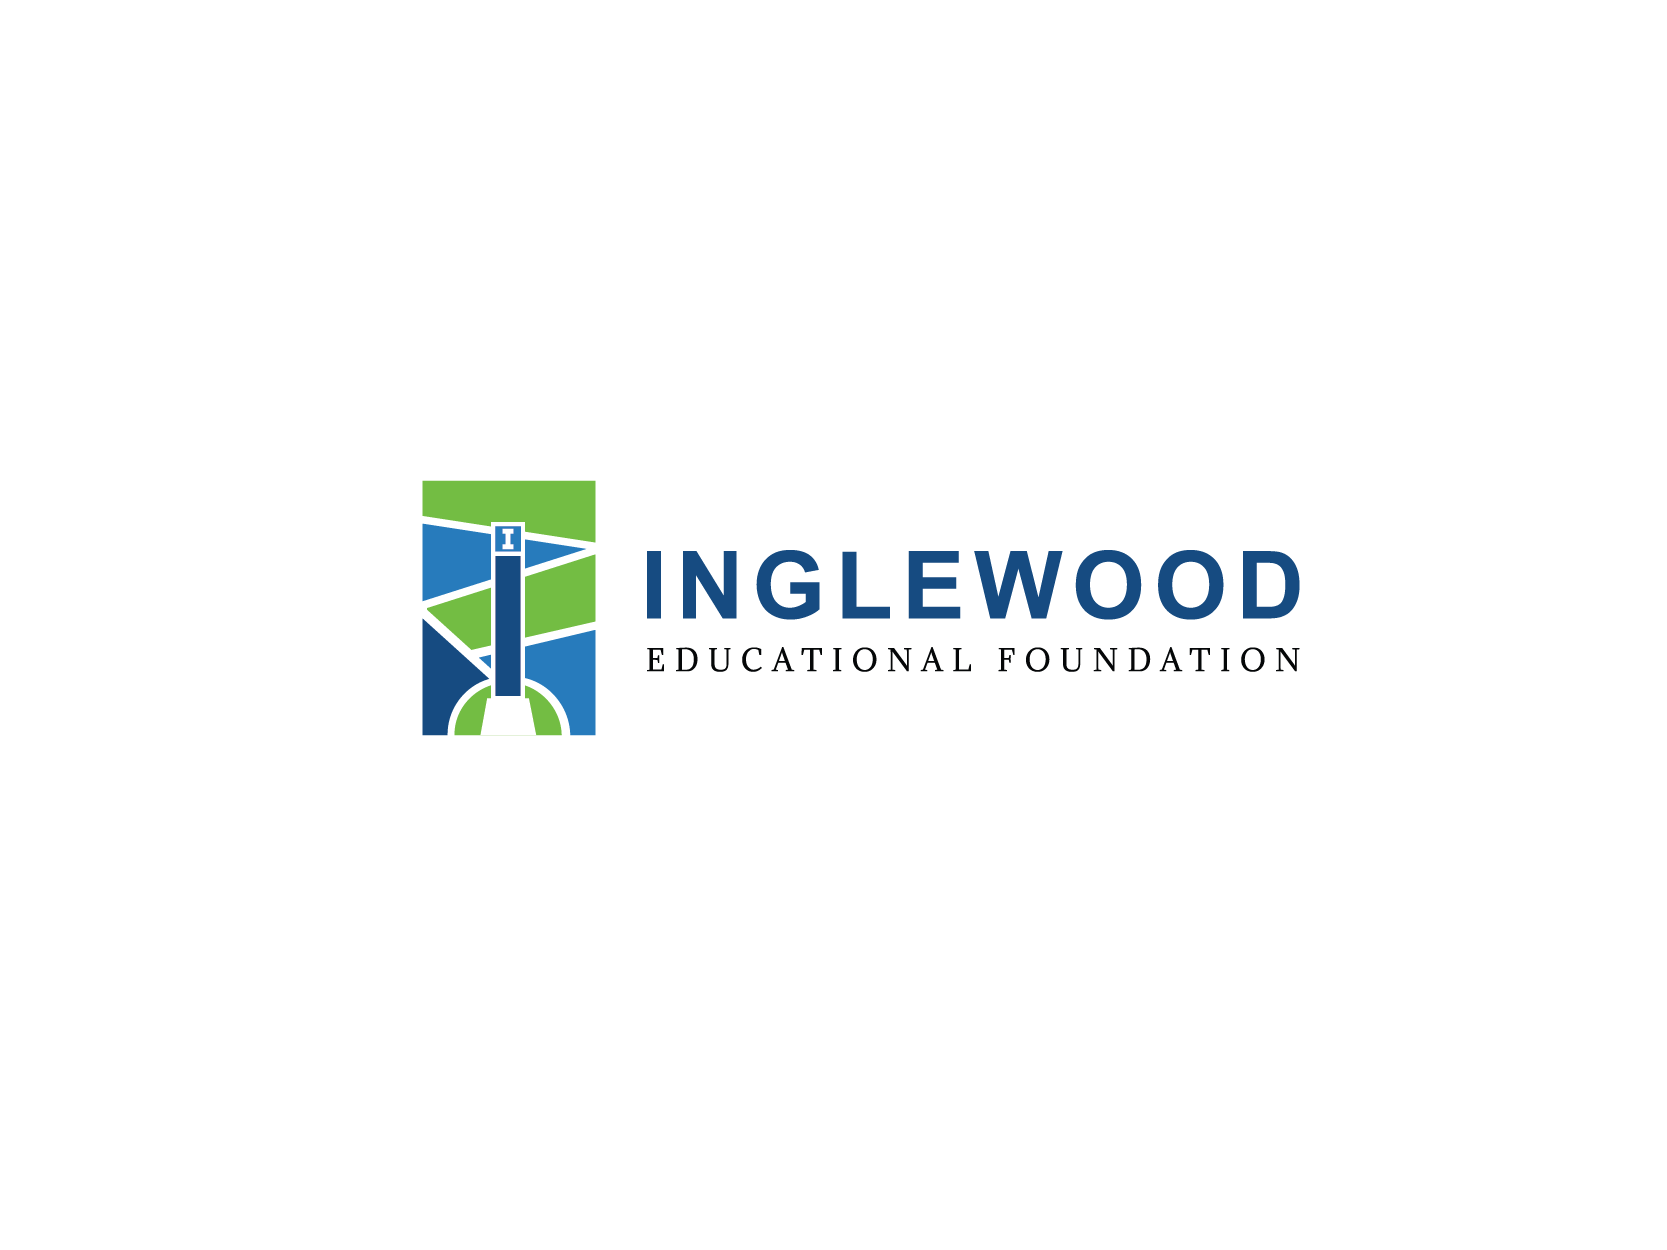 Inglewood Educational Foundation